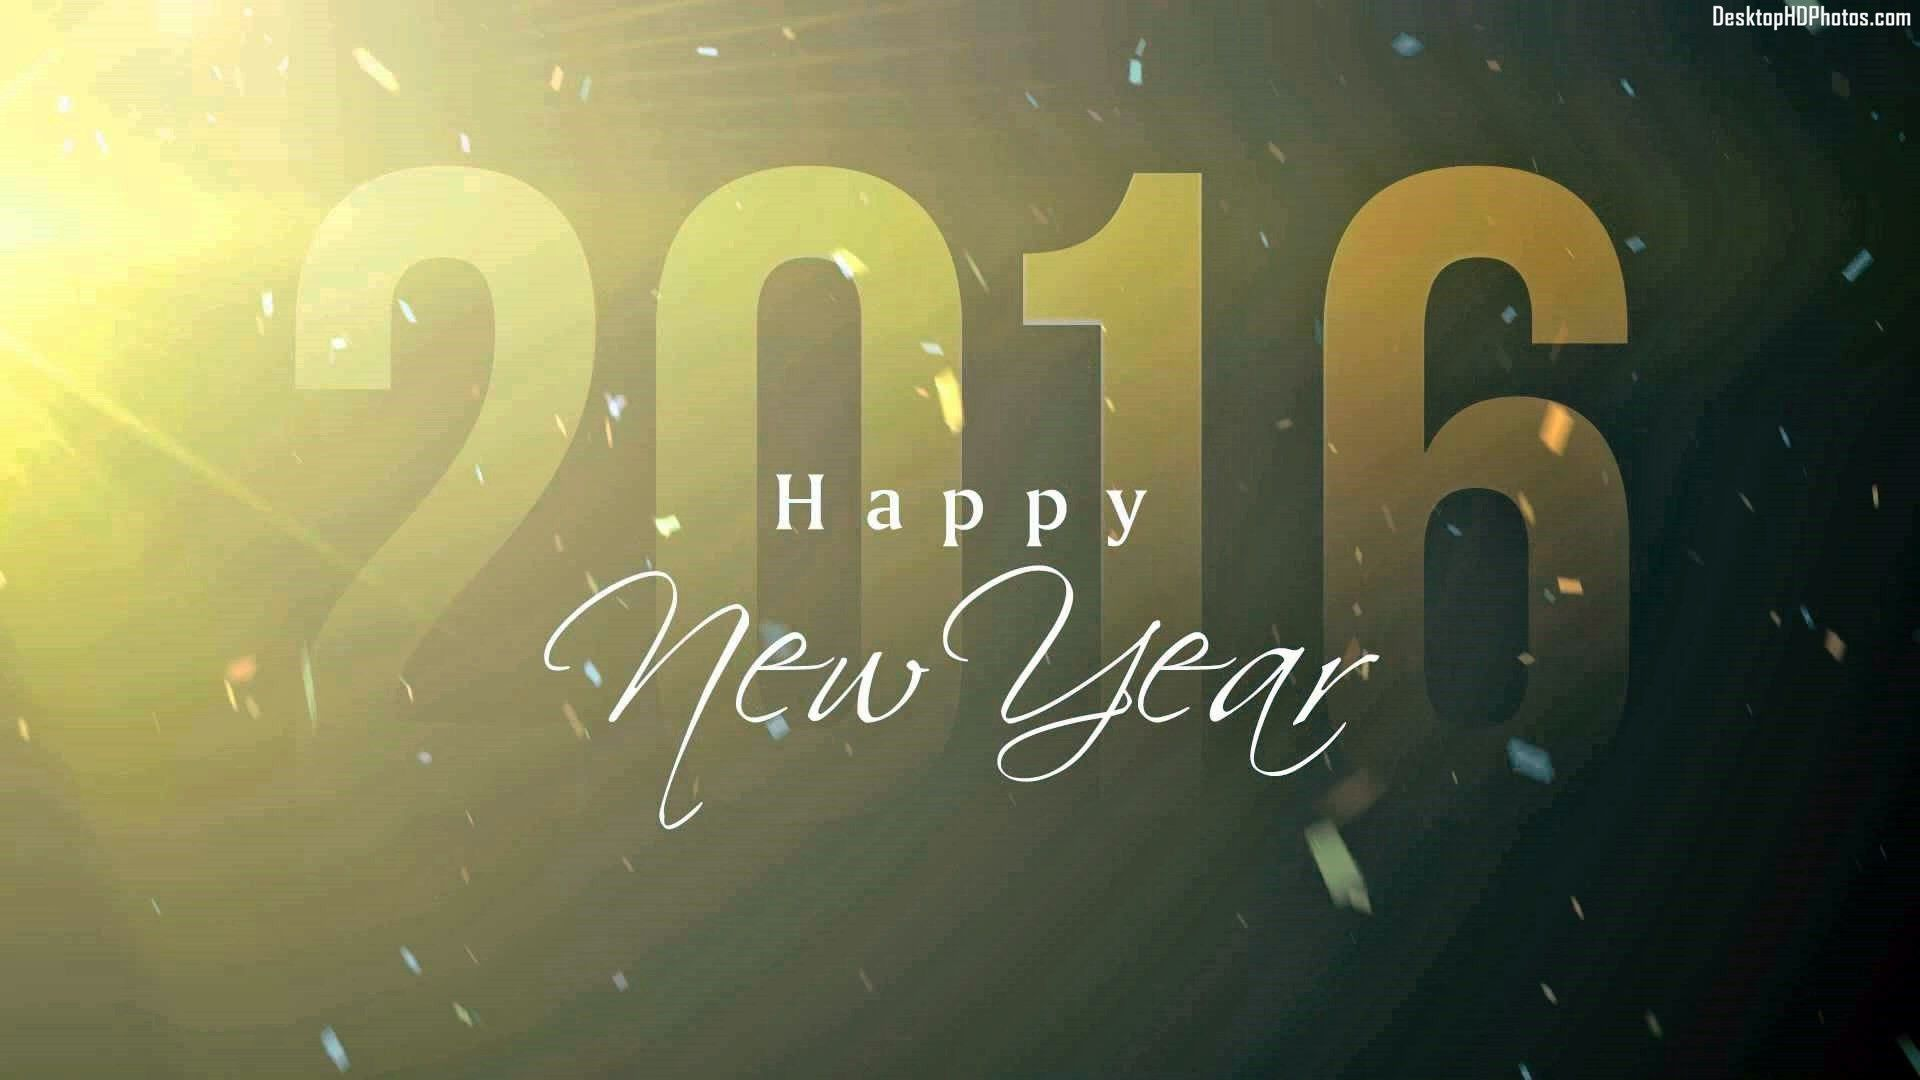 Wallpaper download new year 2016 - Happy New Year Hd Wallpapers Images Free Download Techicy